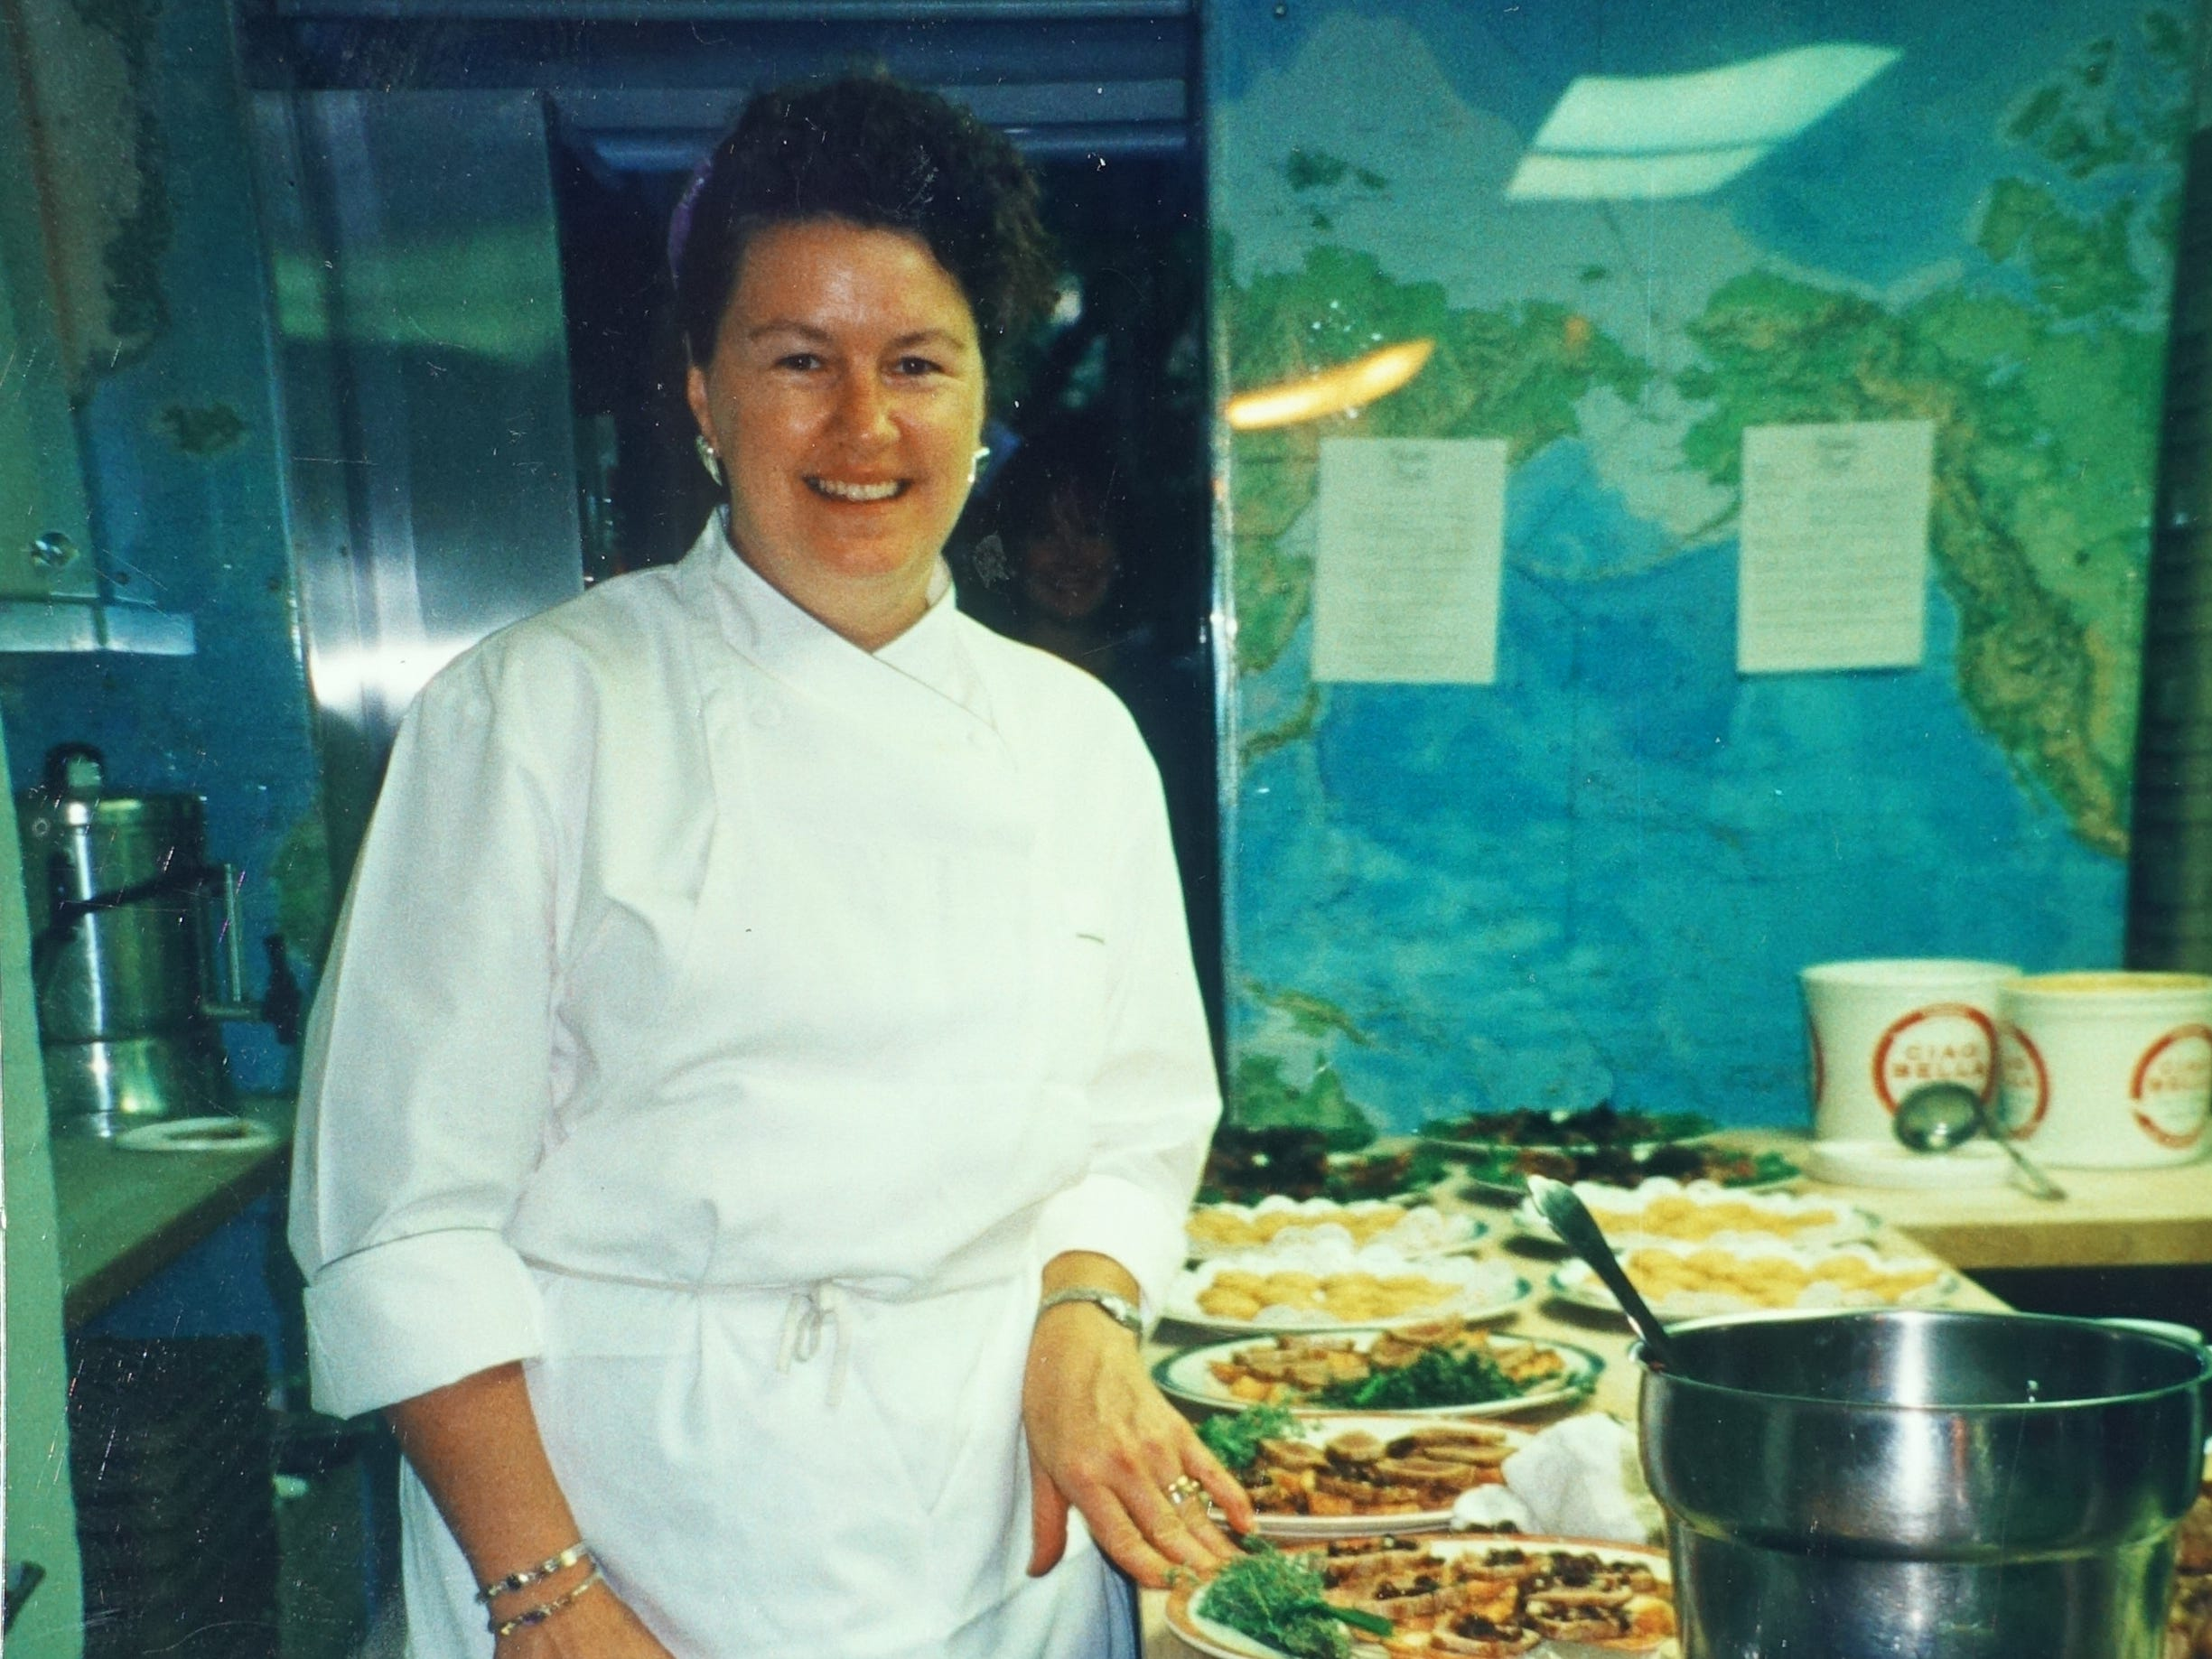 Chrysa Robertson at the James Beard House in New York City in 1997.